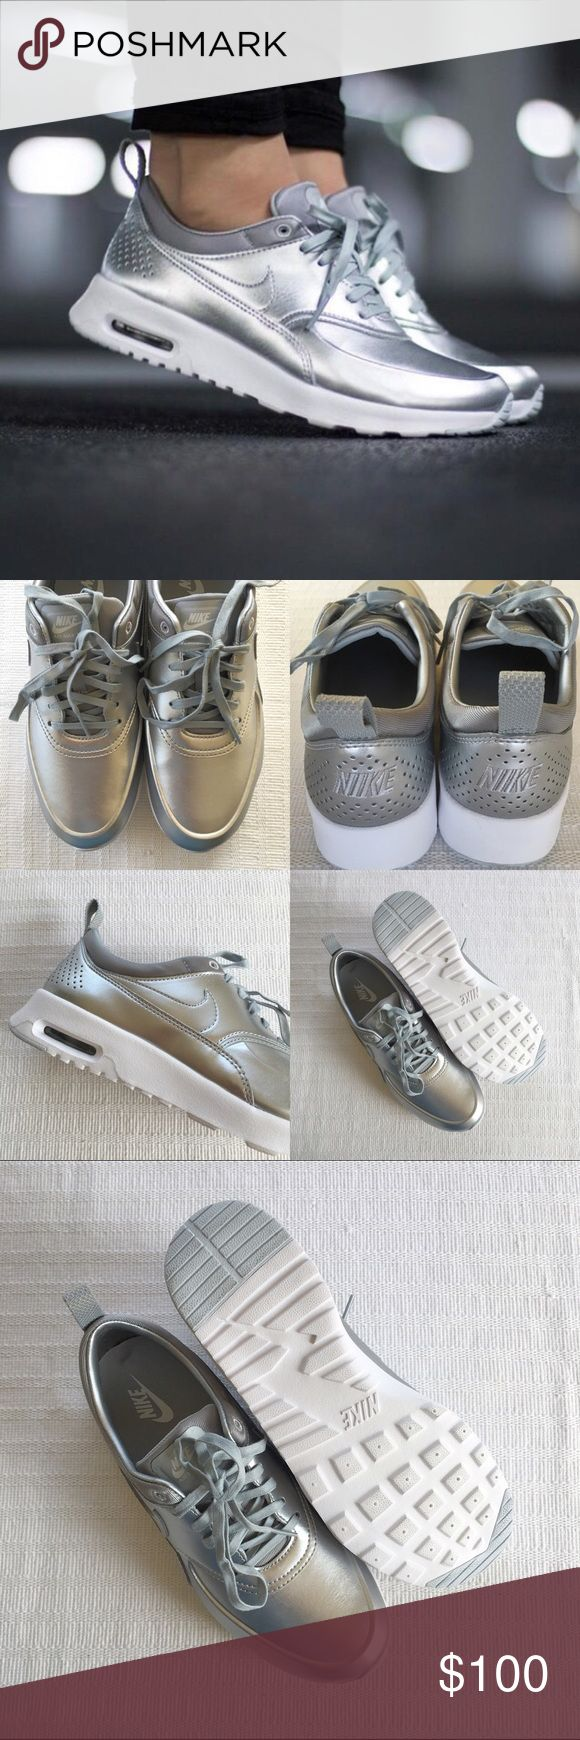 Women's Nike Air Max Thea Metallic Sneakers Women's Nike Air Max Thea Metallic Sneakers Style/Color: 819640-001  • Women's size 8.5  • NEW in box (no lid) • No trades •100% authentic Nike Shoes Sneakers